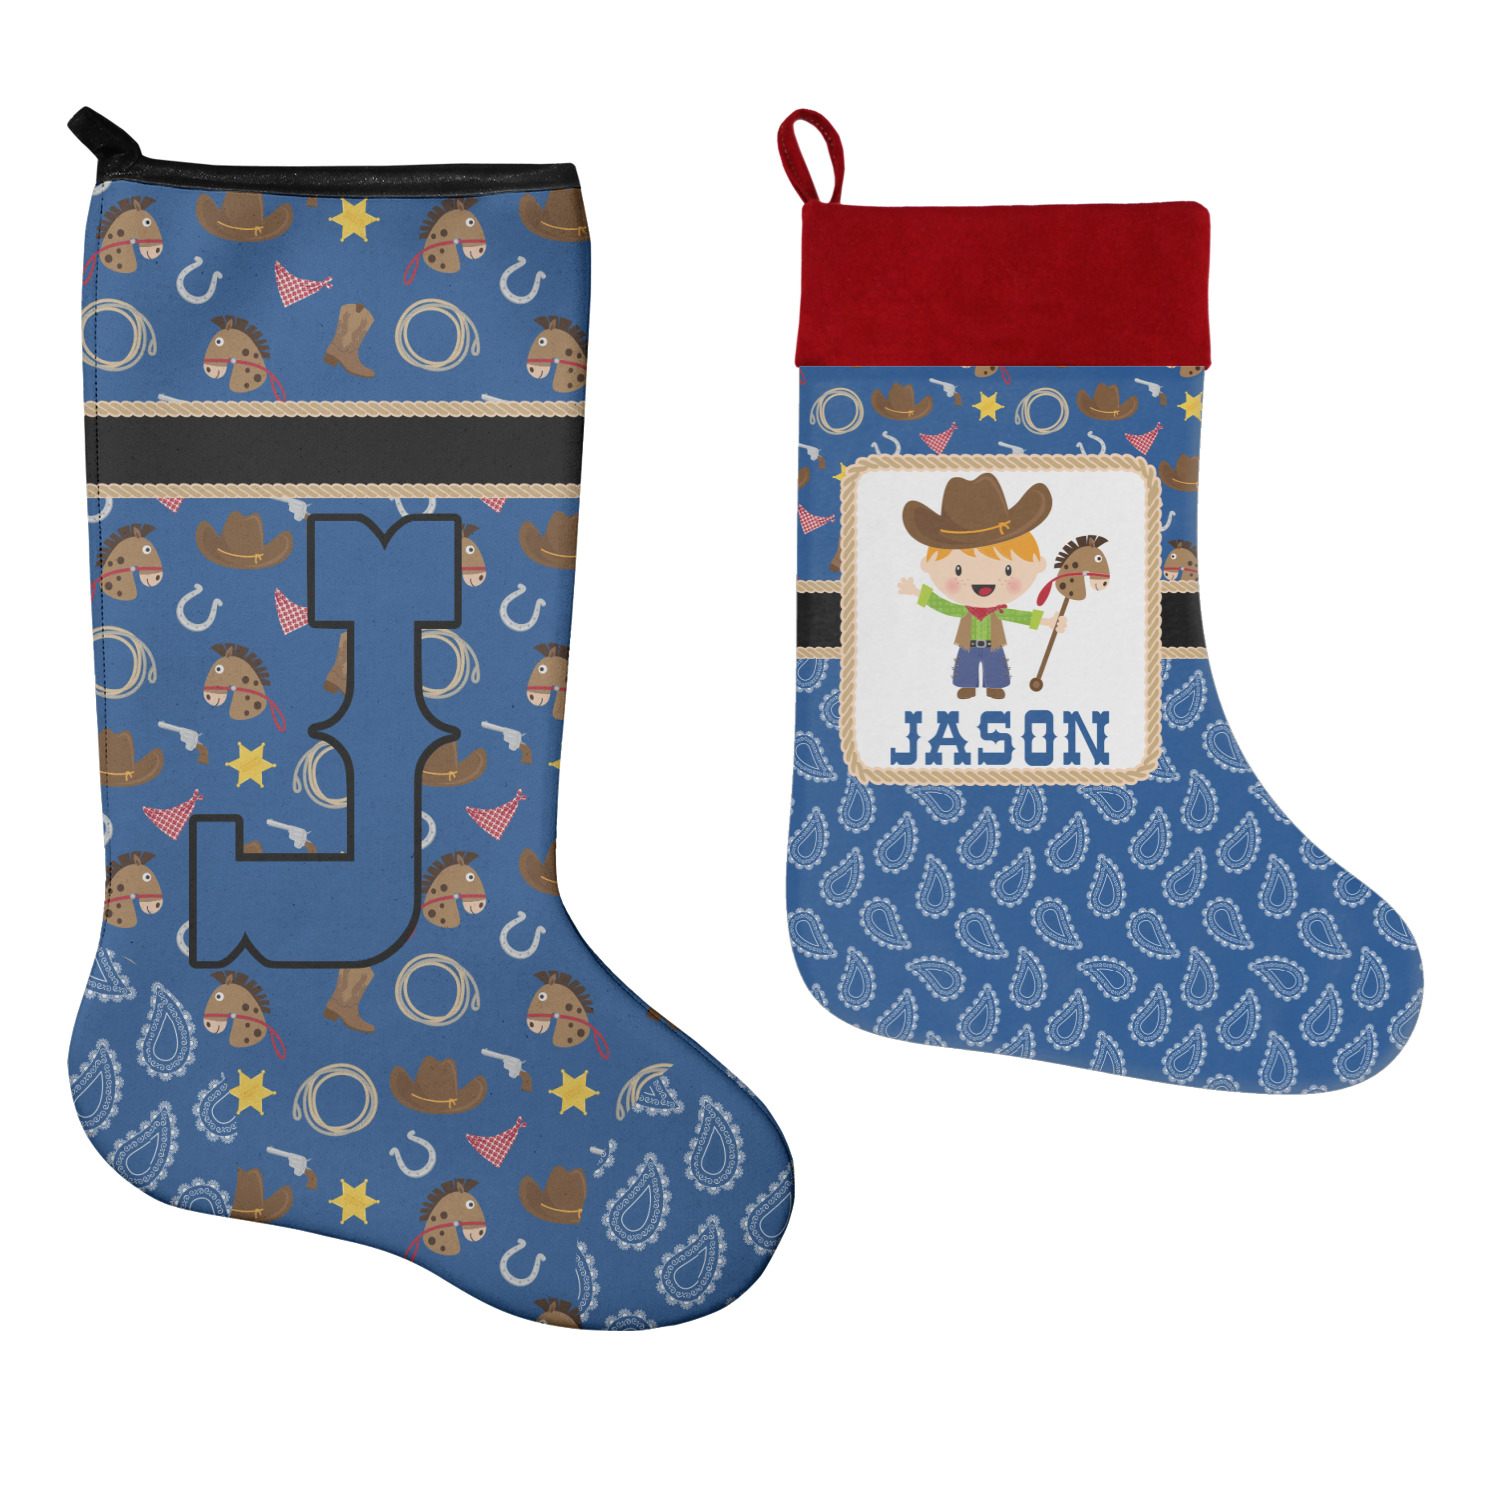 Western Christmas Stockings Personalized.Blue Western Christmas Stocking Personalized